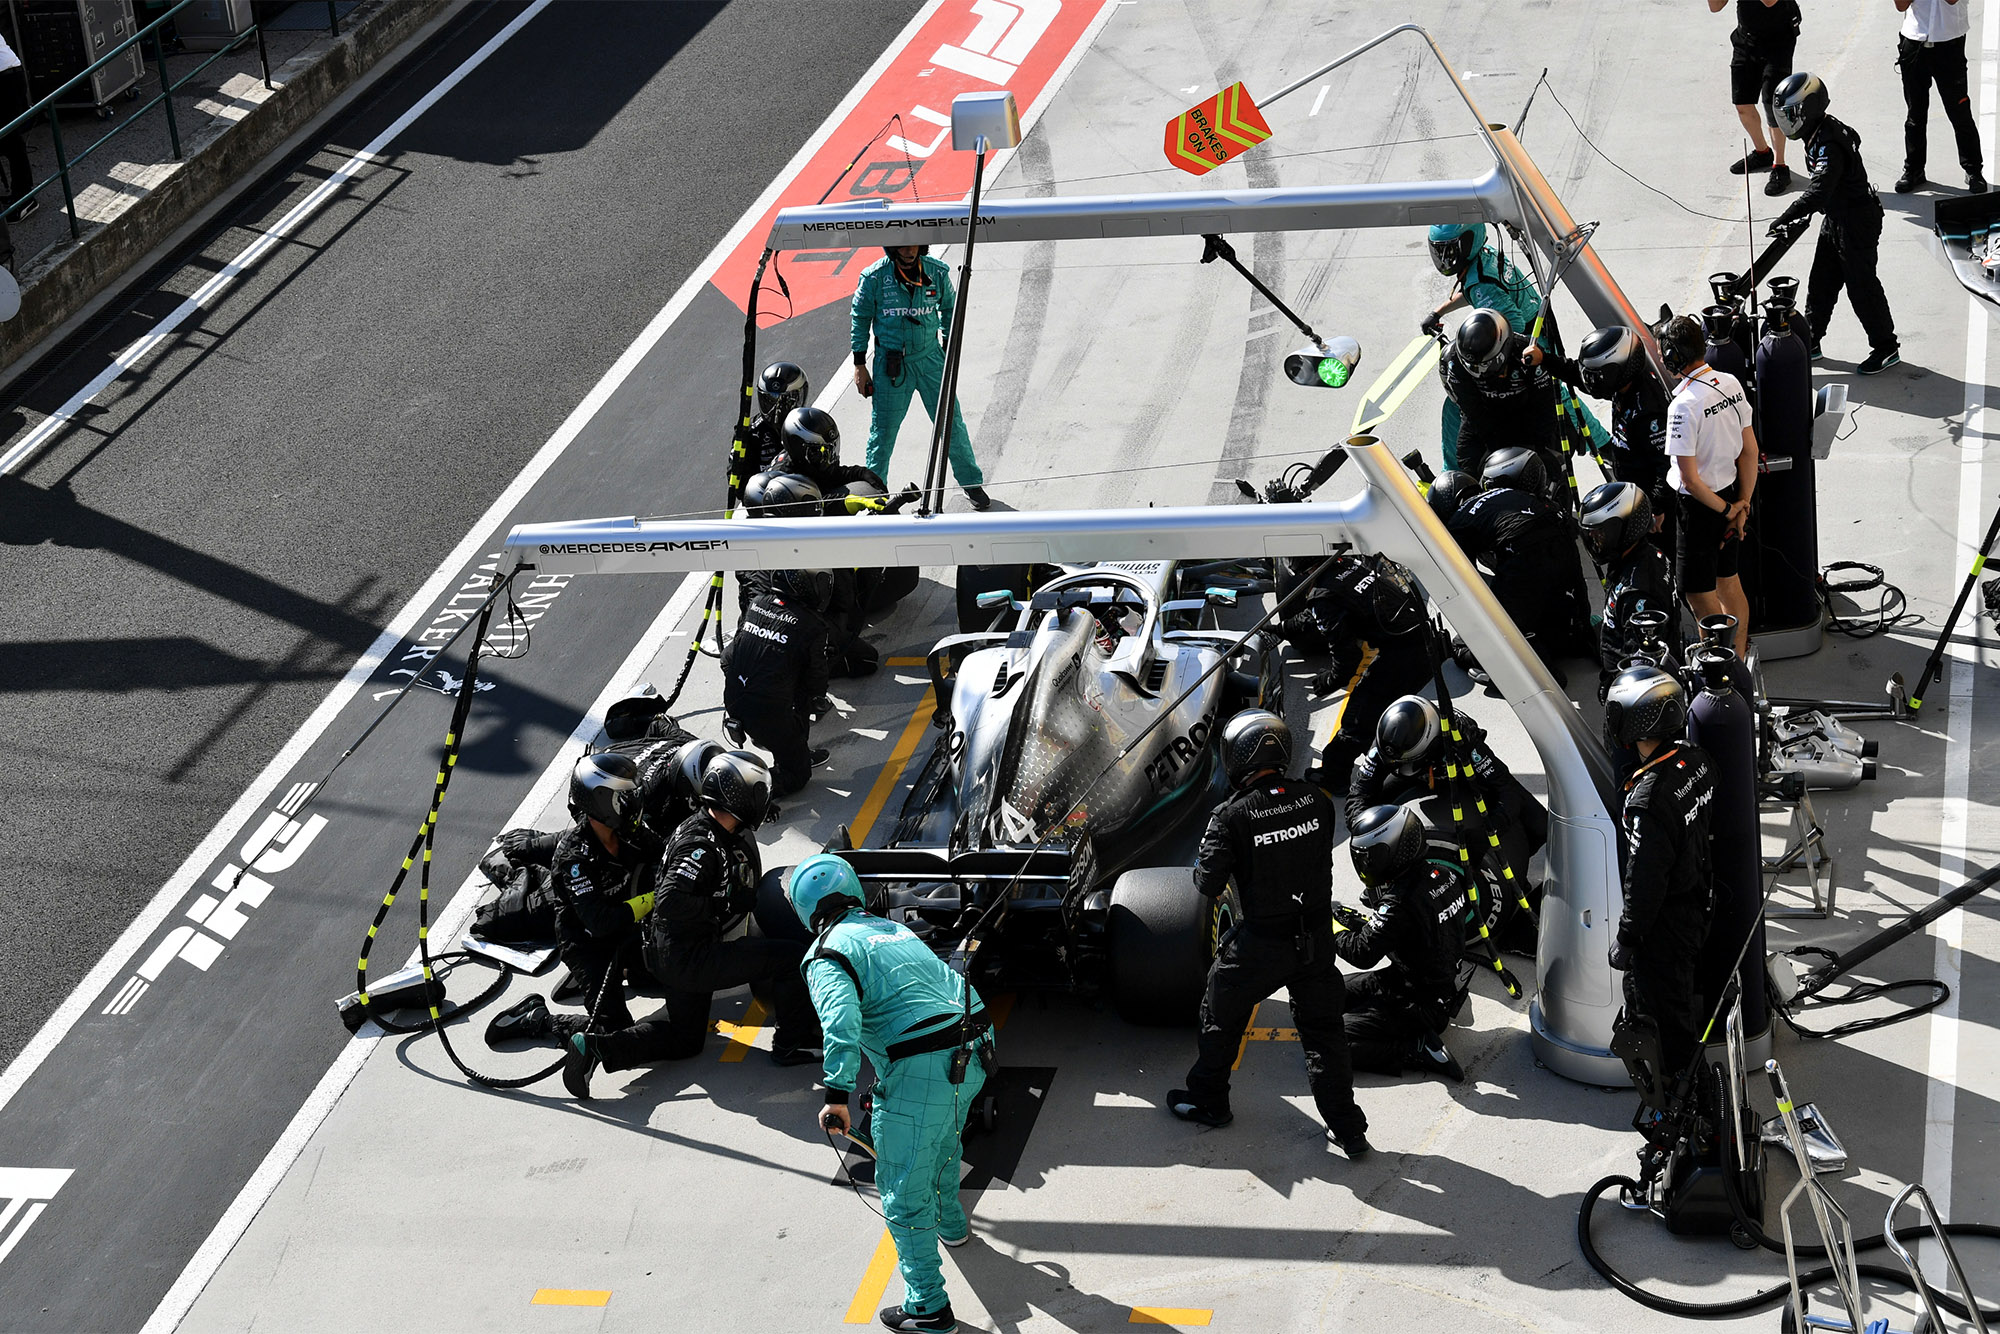 Lewis Hamilton makes his second stop during the 2019 Hungarian Grand Prix